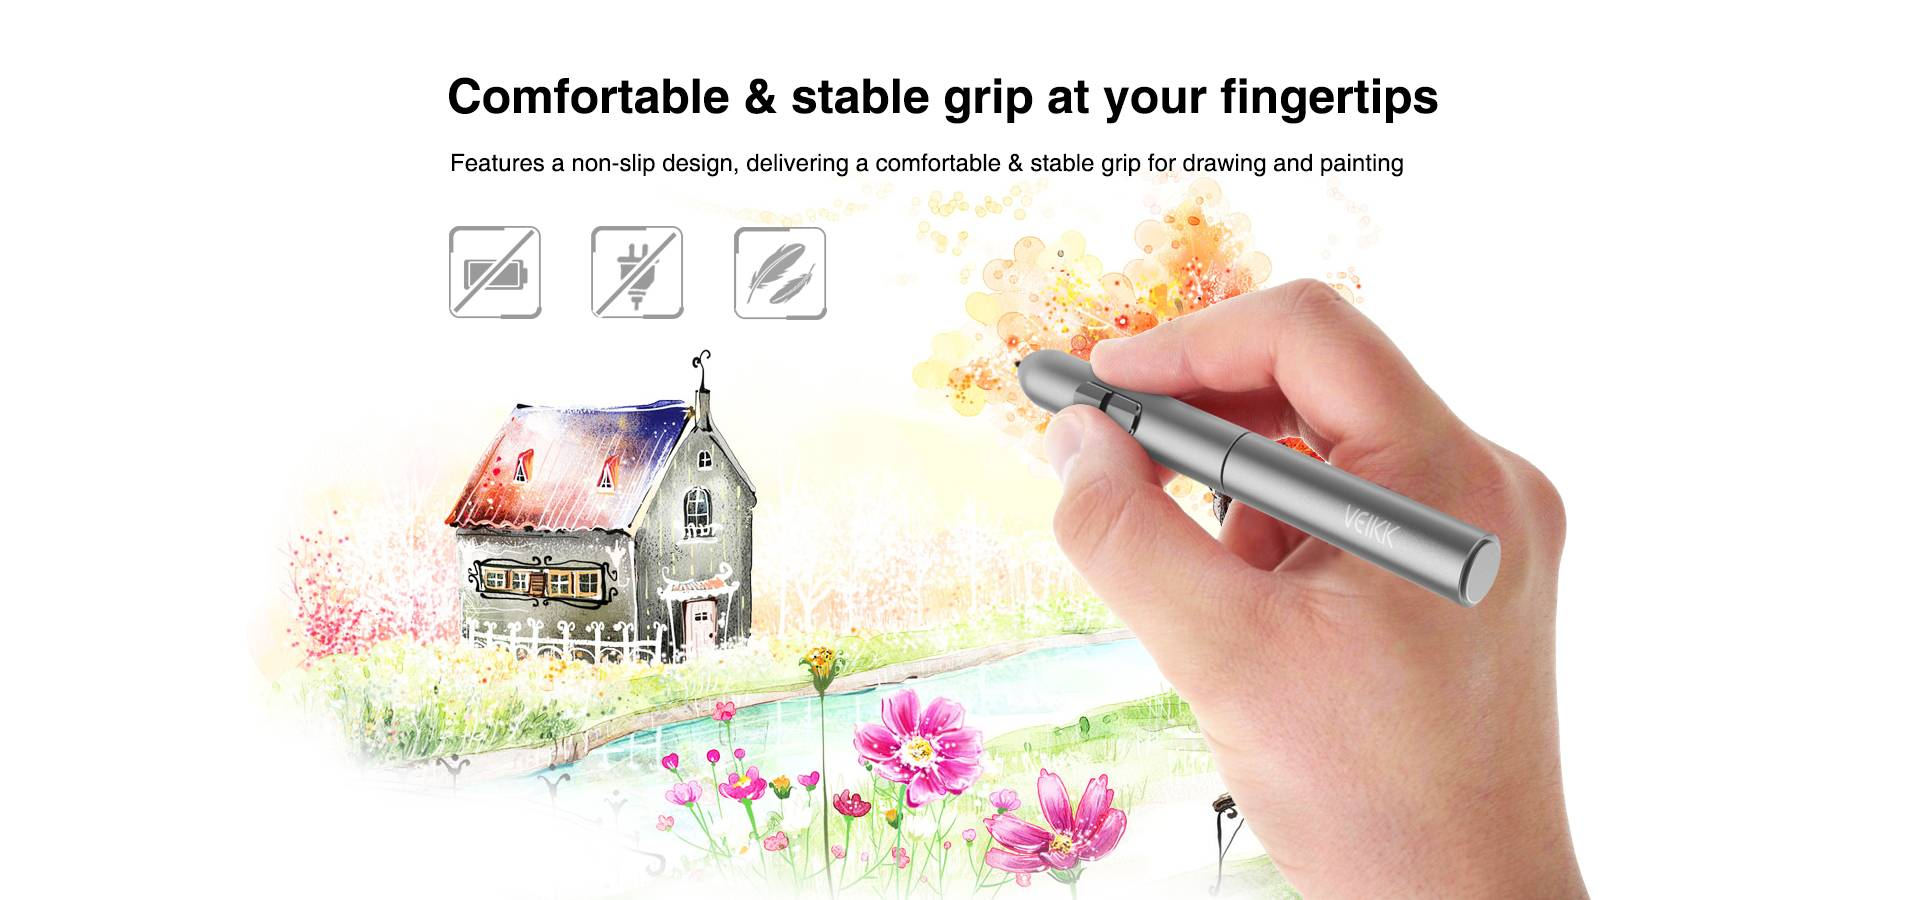 Comfortable & Stable grip at your fingertips